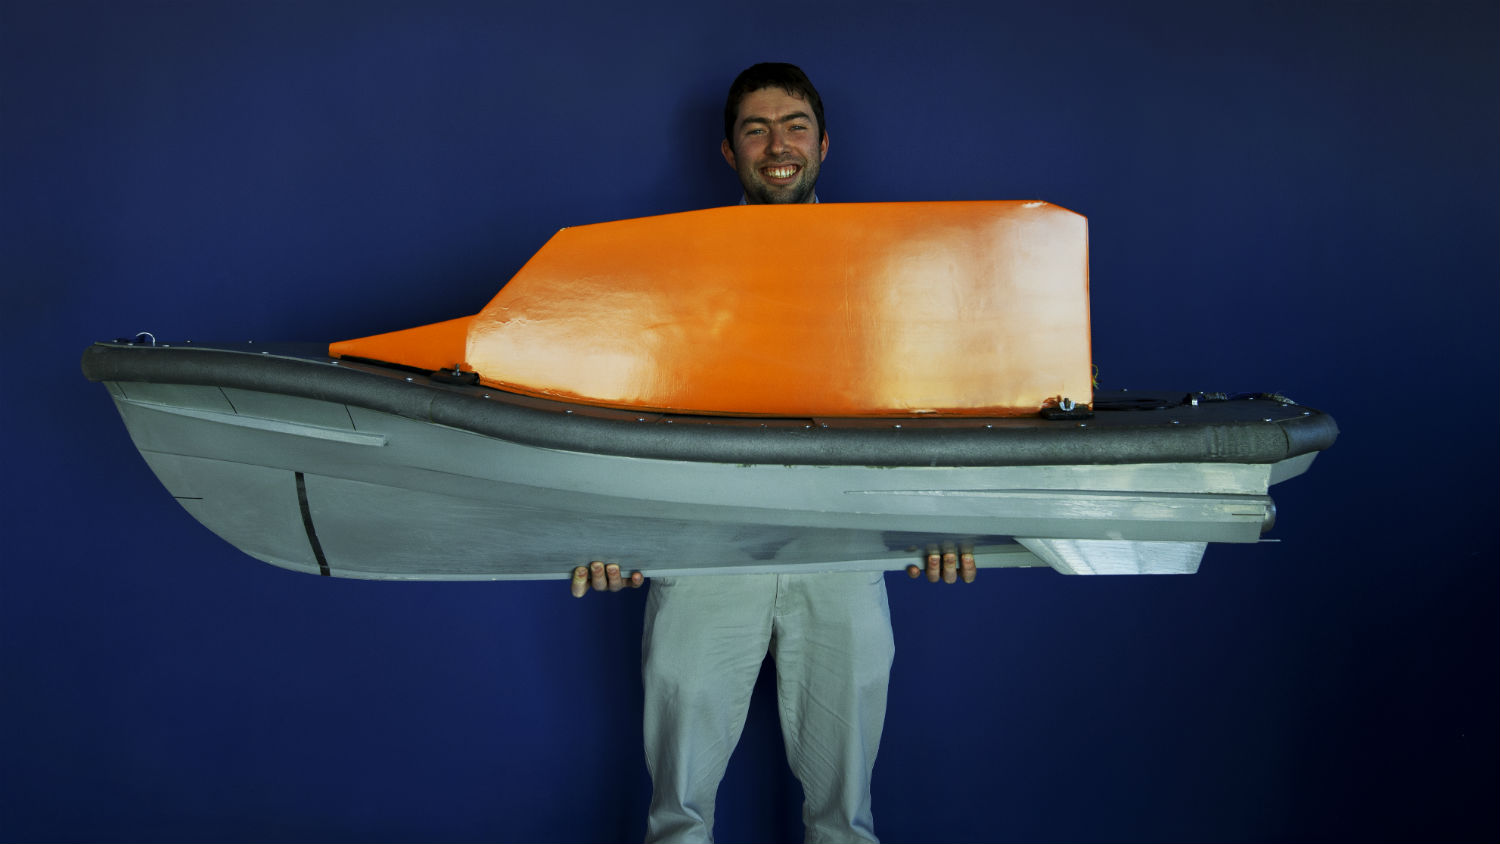 RNLI Naval Architect Peter Eyre with his hull model design for the new Shannon class lifeboat